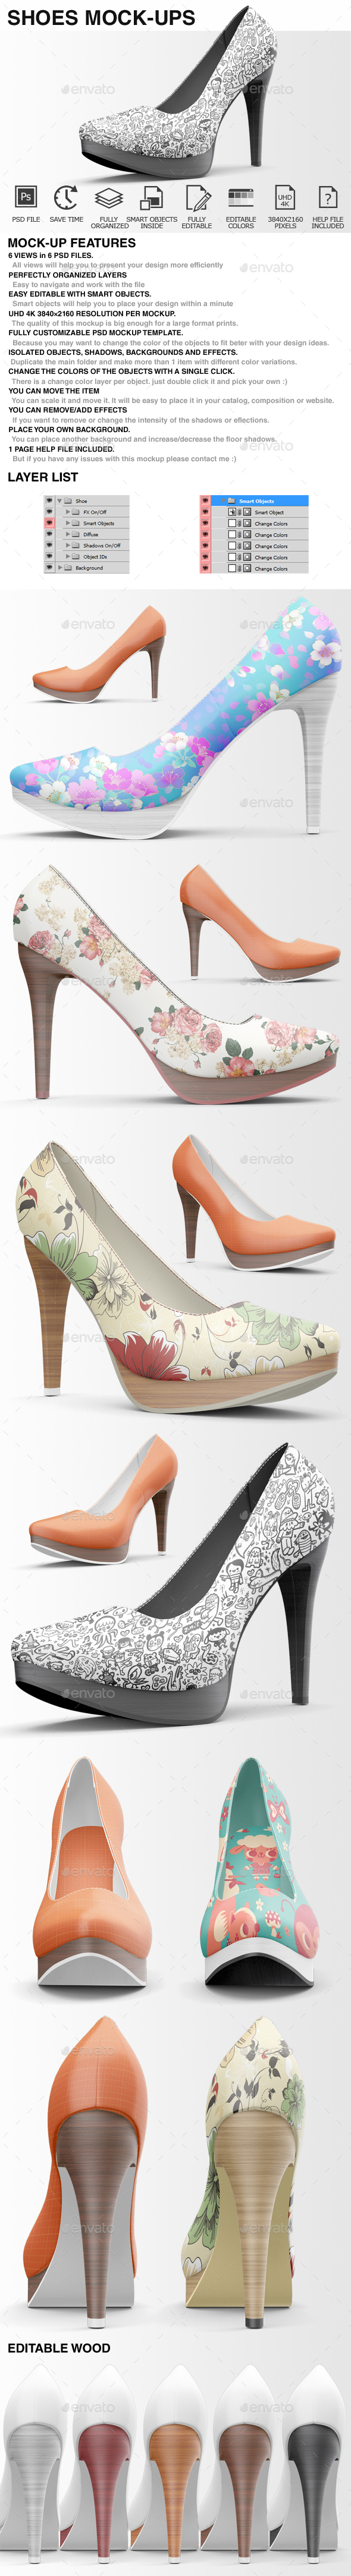 Shoes Mockup - High Heels Mockup - Miscellaneous Apparel